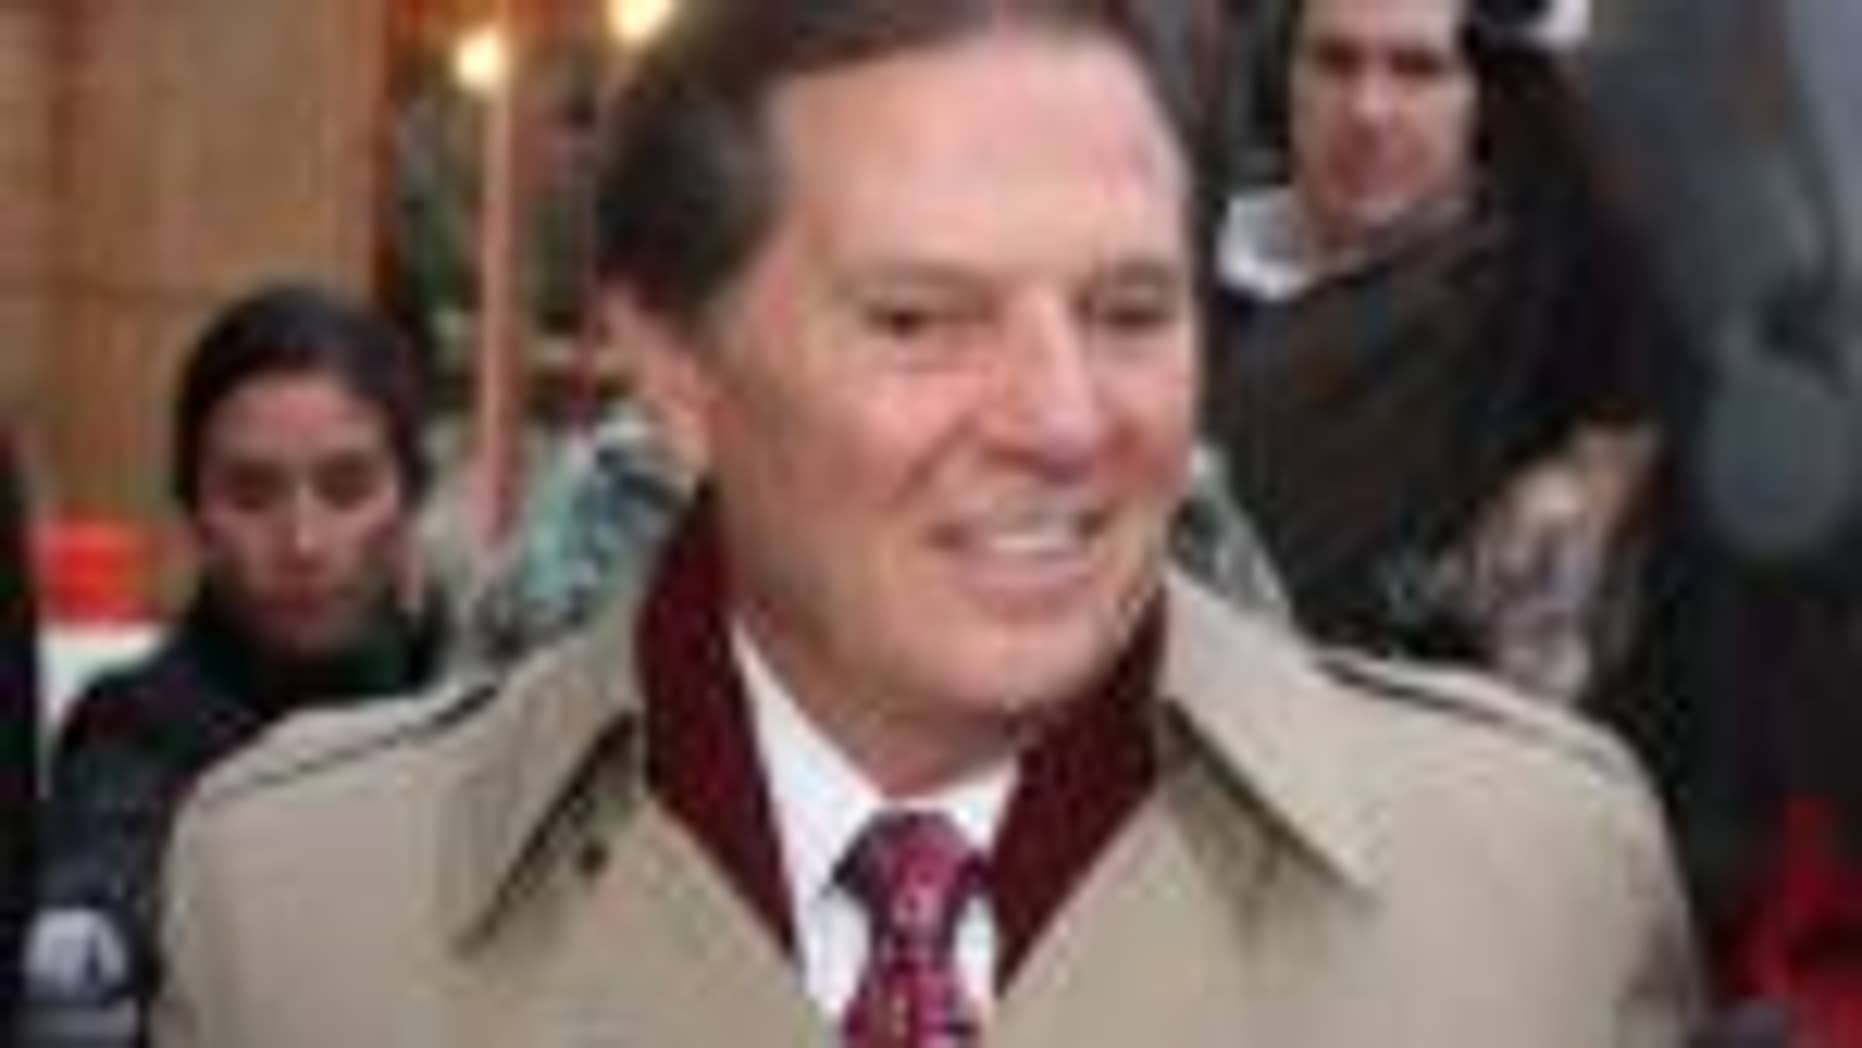 Former House Majority Leader Tom DeLay leaves the Travis Co. Jail after posting an appeals bond in Austin, Texas (AP photo)